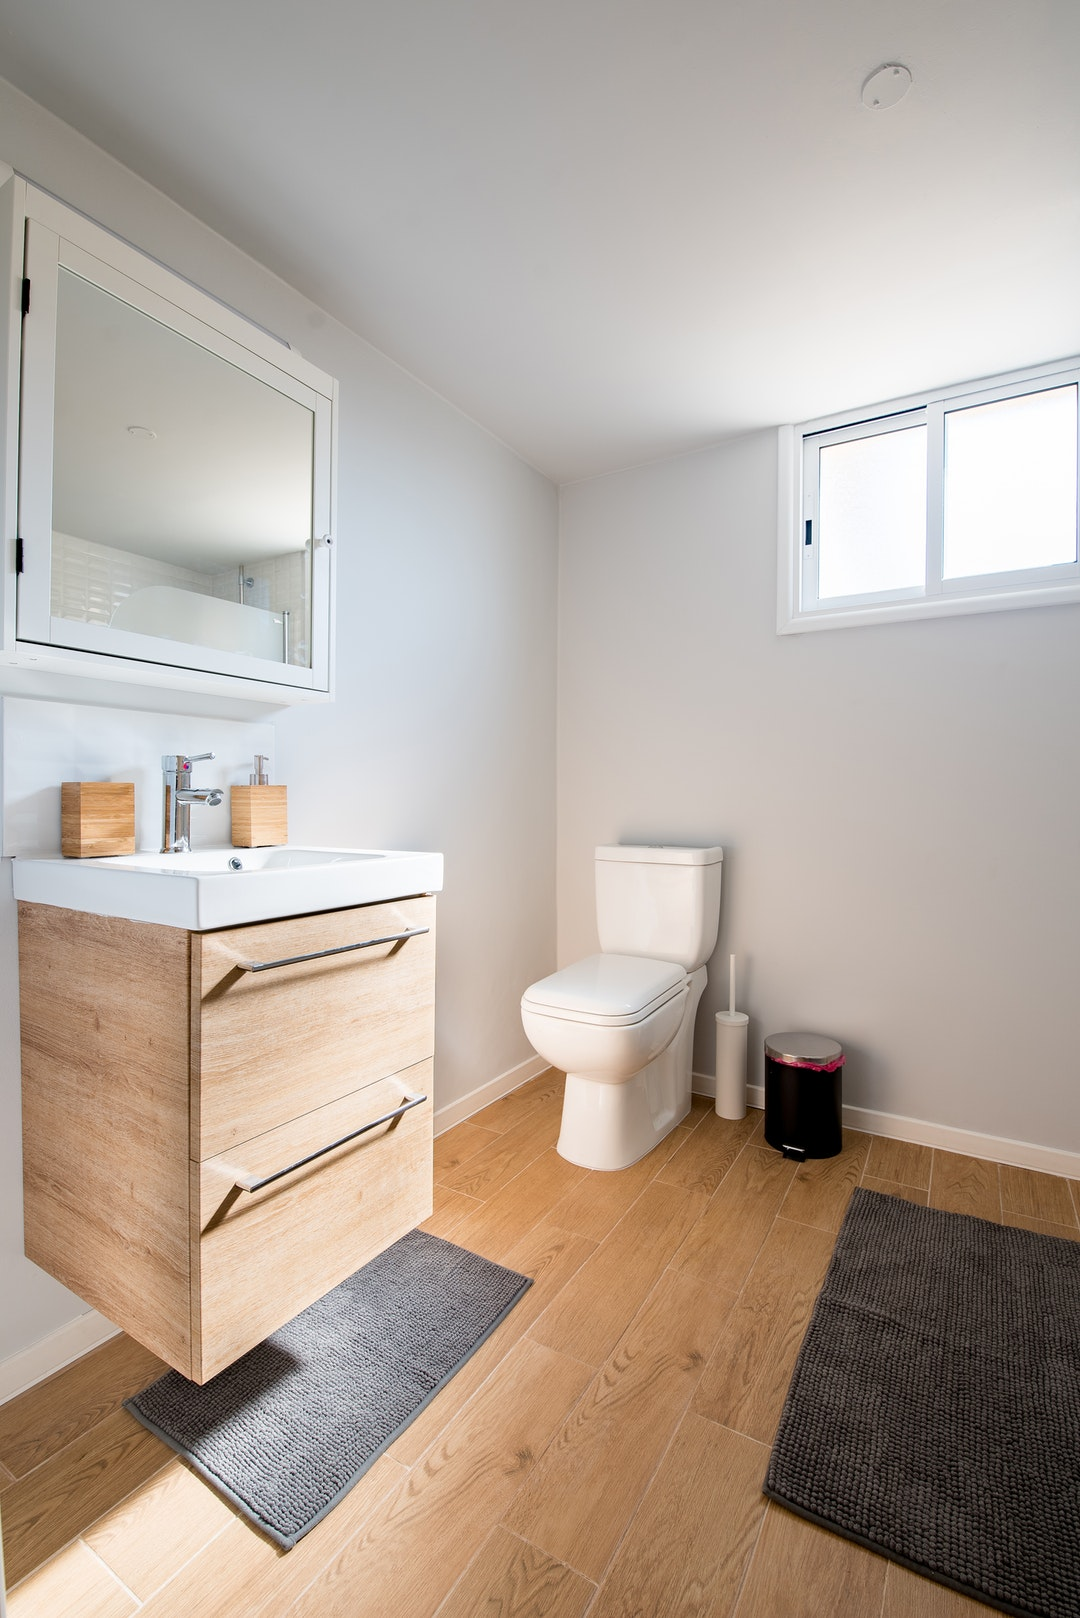 Small Bathroom Flooring Ideas Your Best Options Let 39 S Remodel